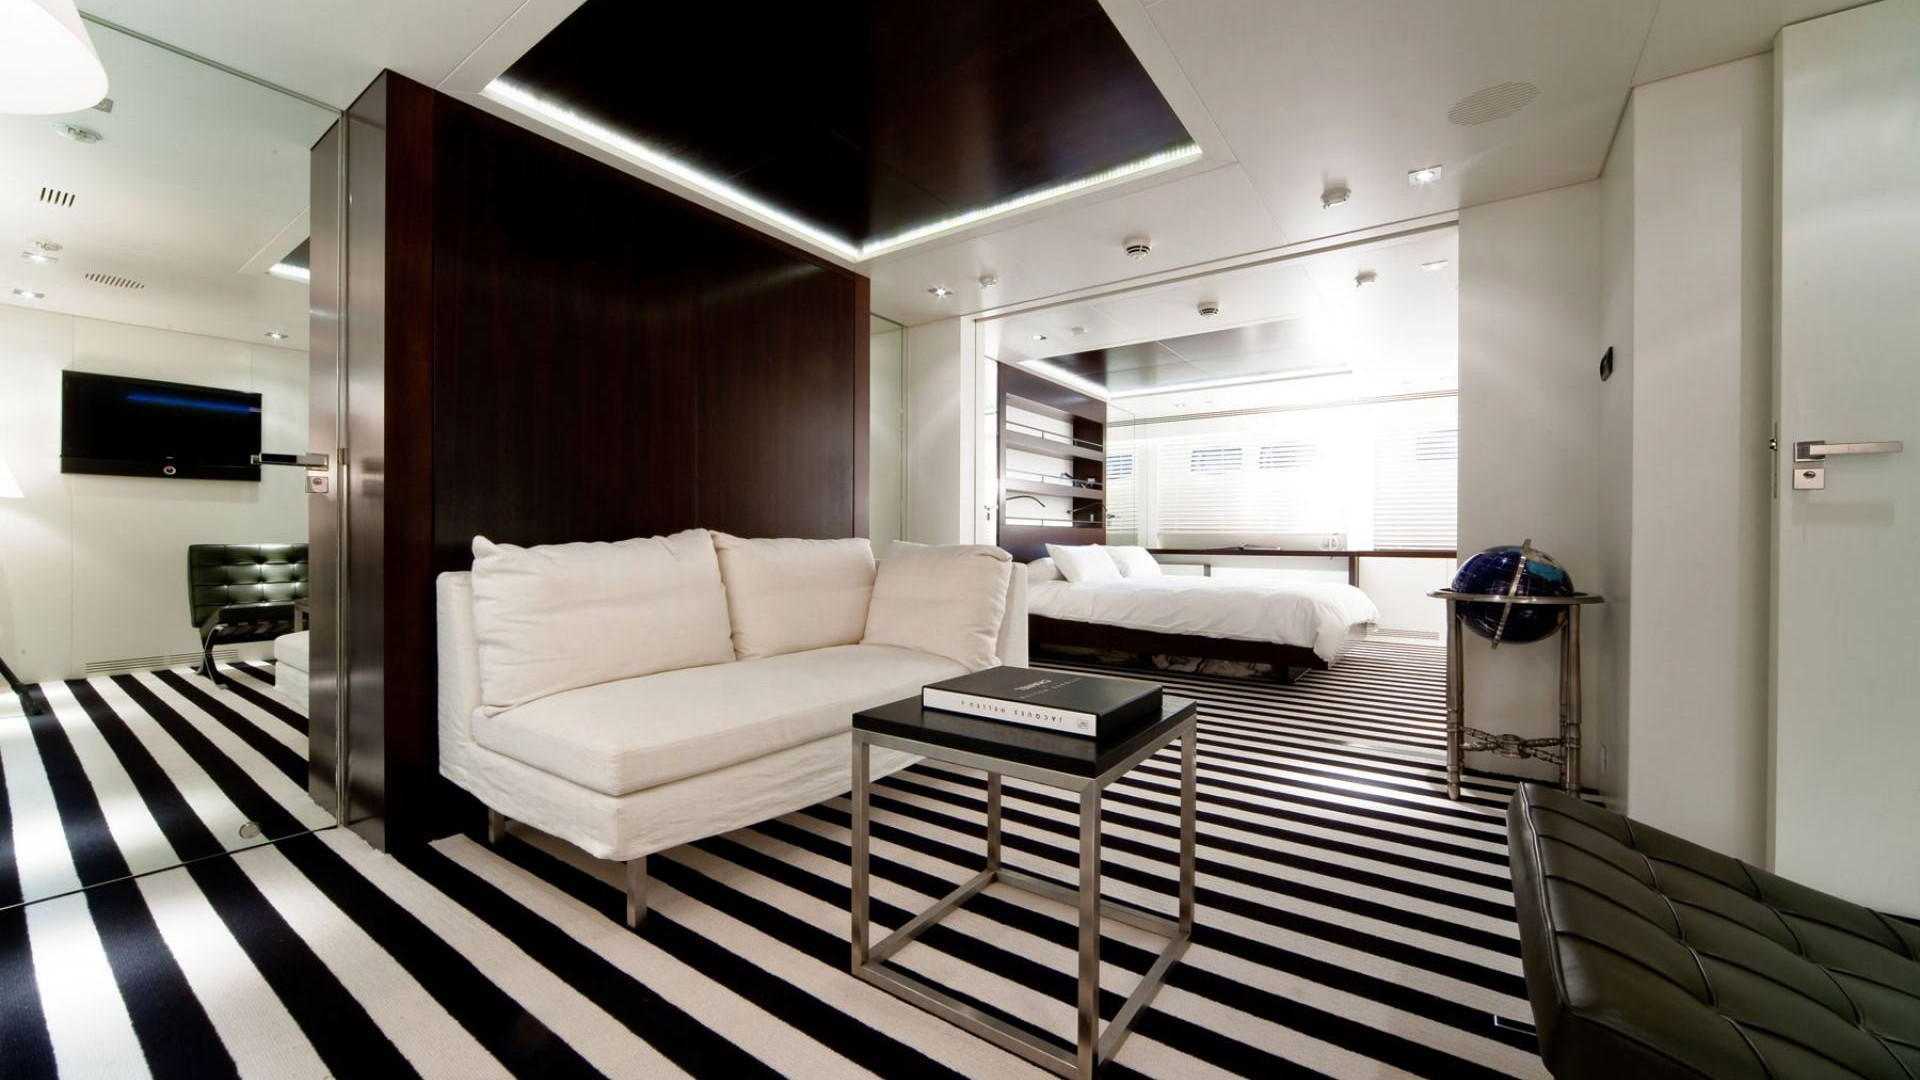 auspicious yacht charter details mondomarine. Black Bedroom Furniture Sets. Home Design Ideas